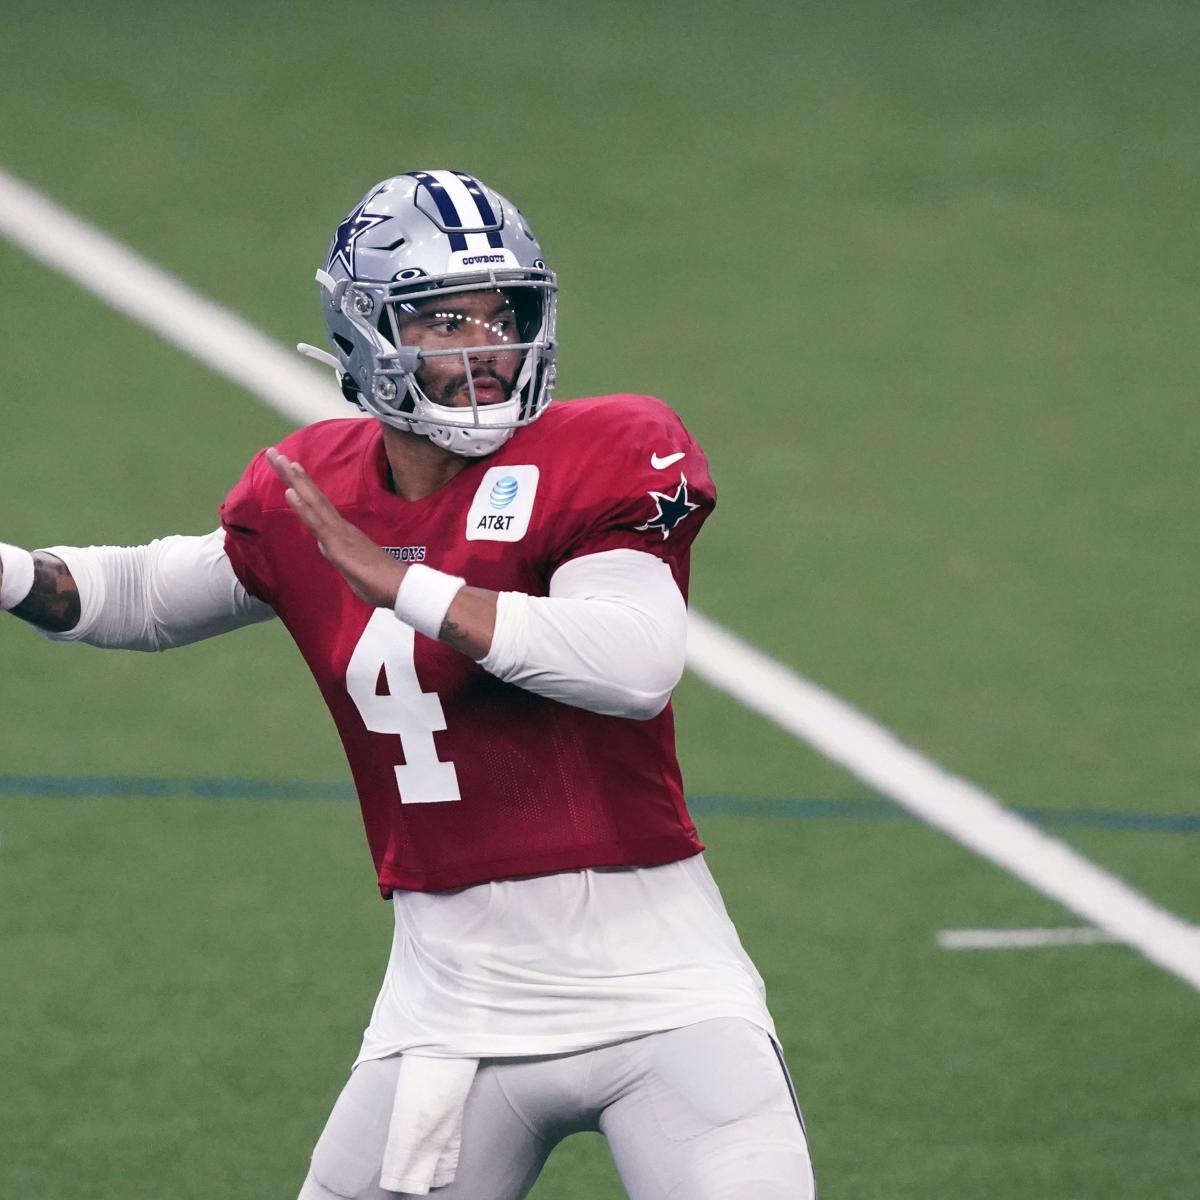 Latest Win-Loss Predictions for Every NFL Team Ahead of 2020 Season